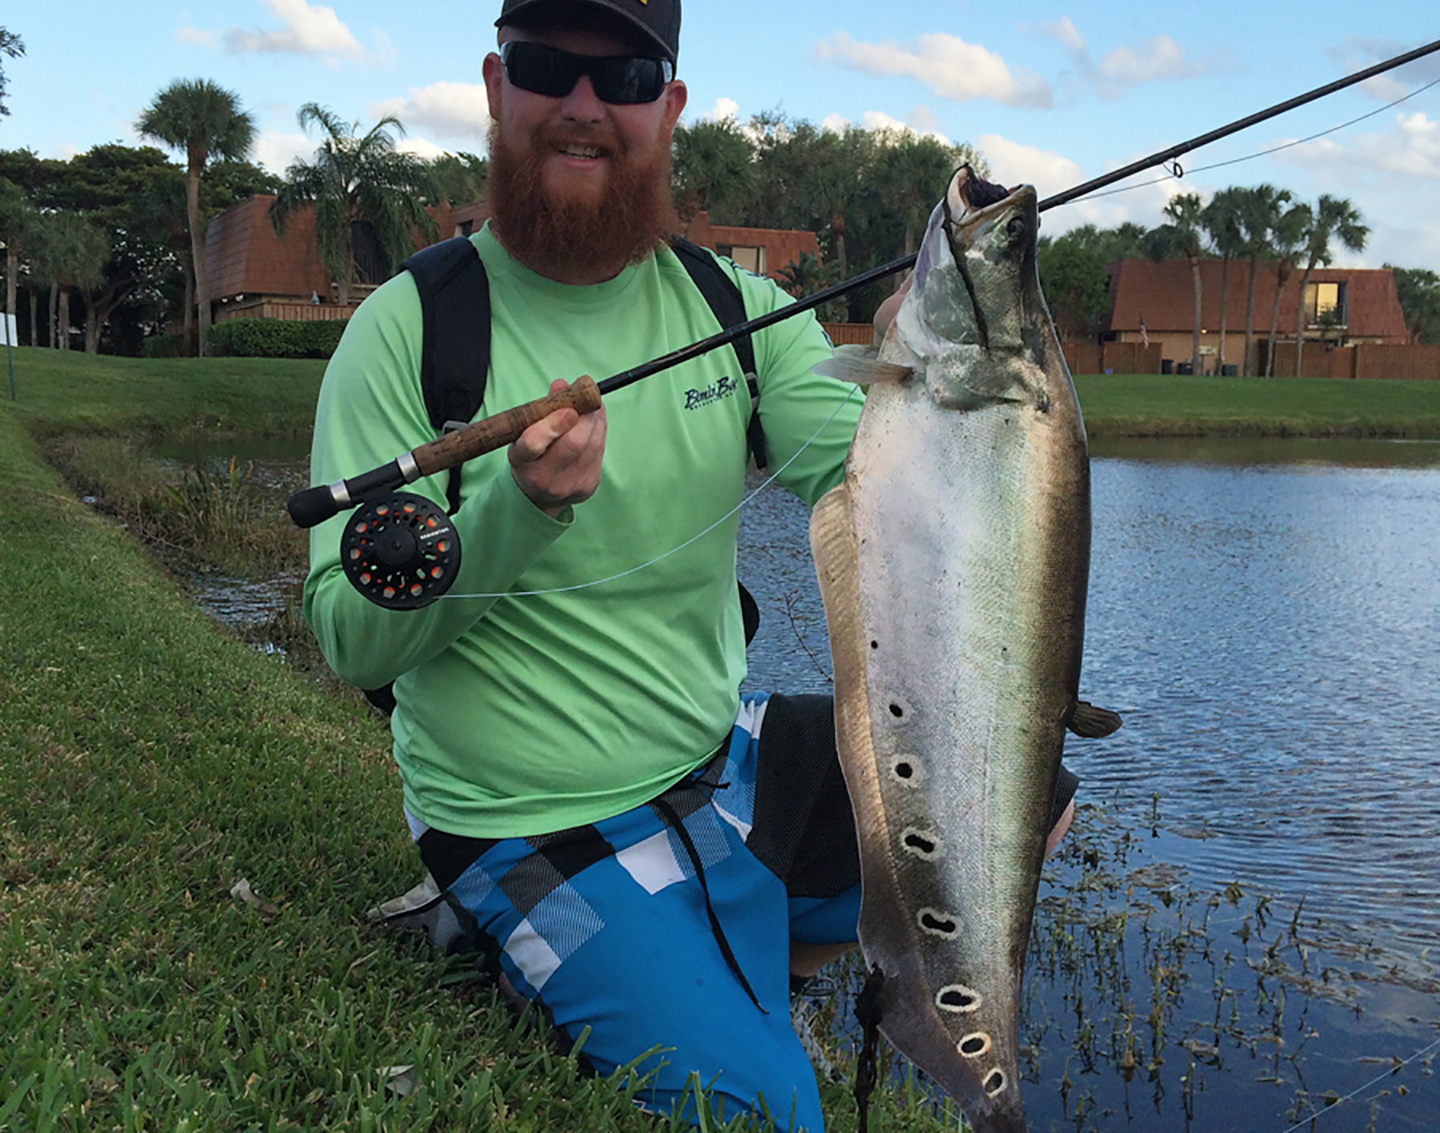 An anglers holding a fly fishing rod and an invasive clown knife fish.